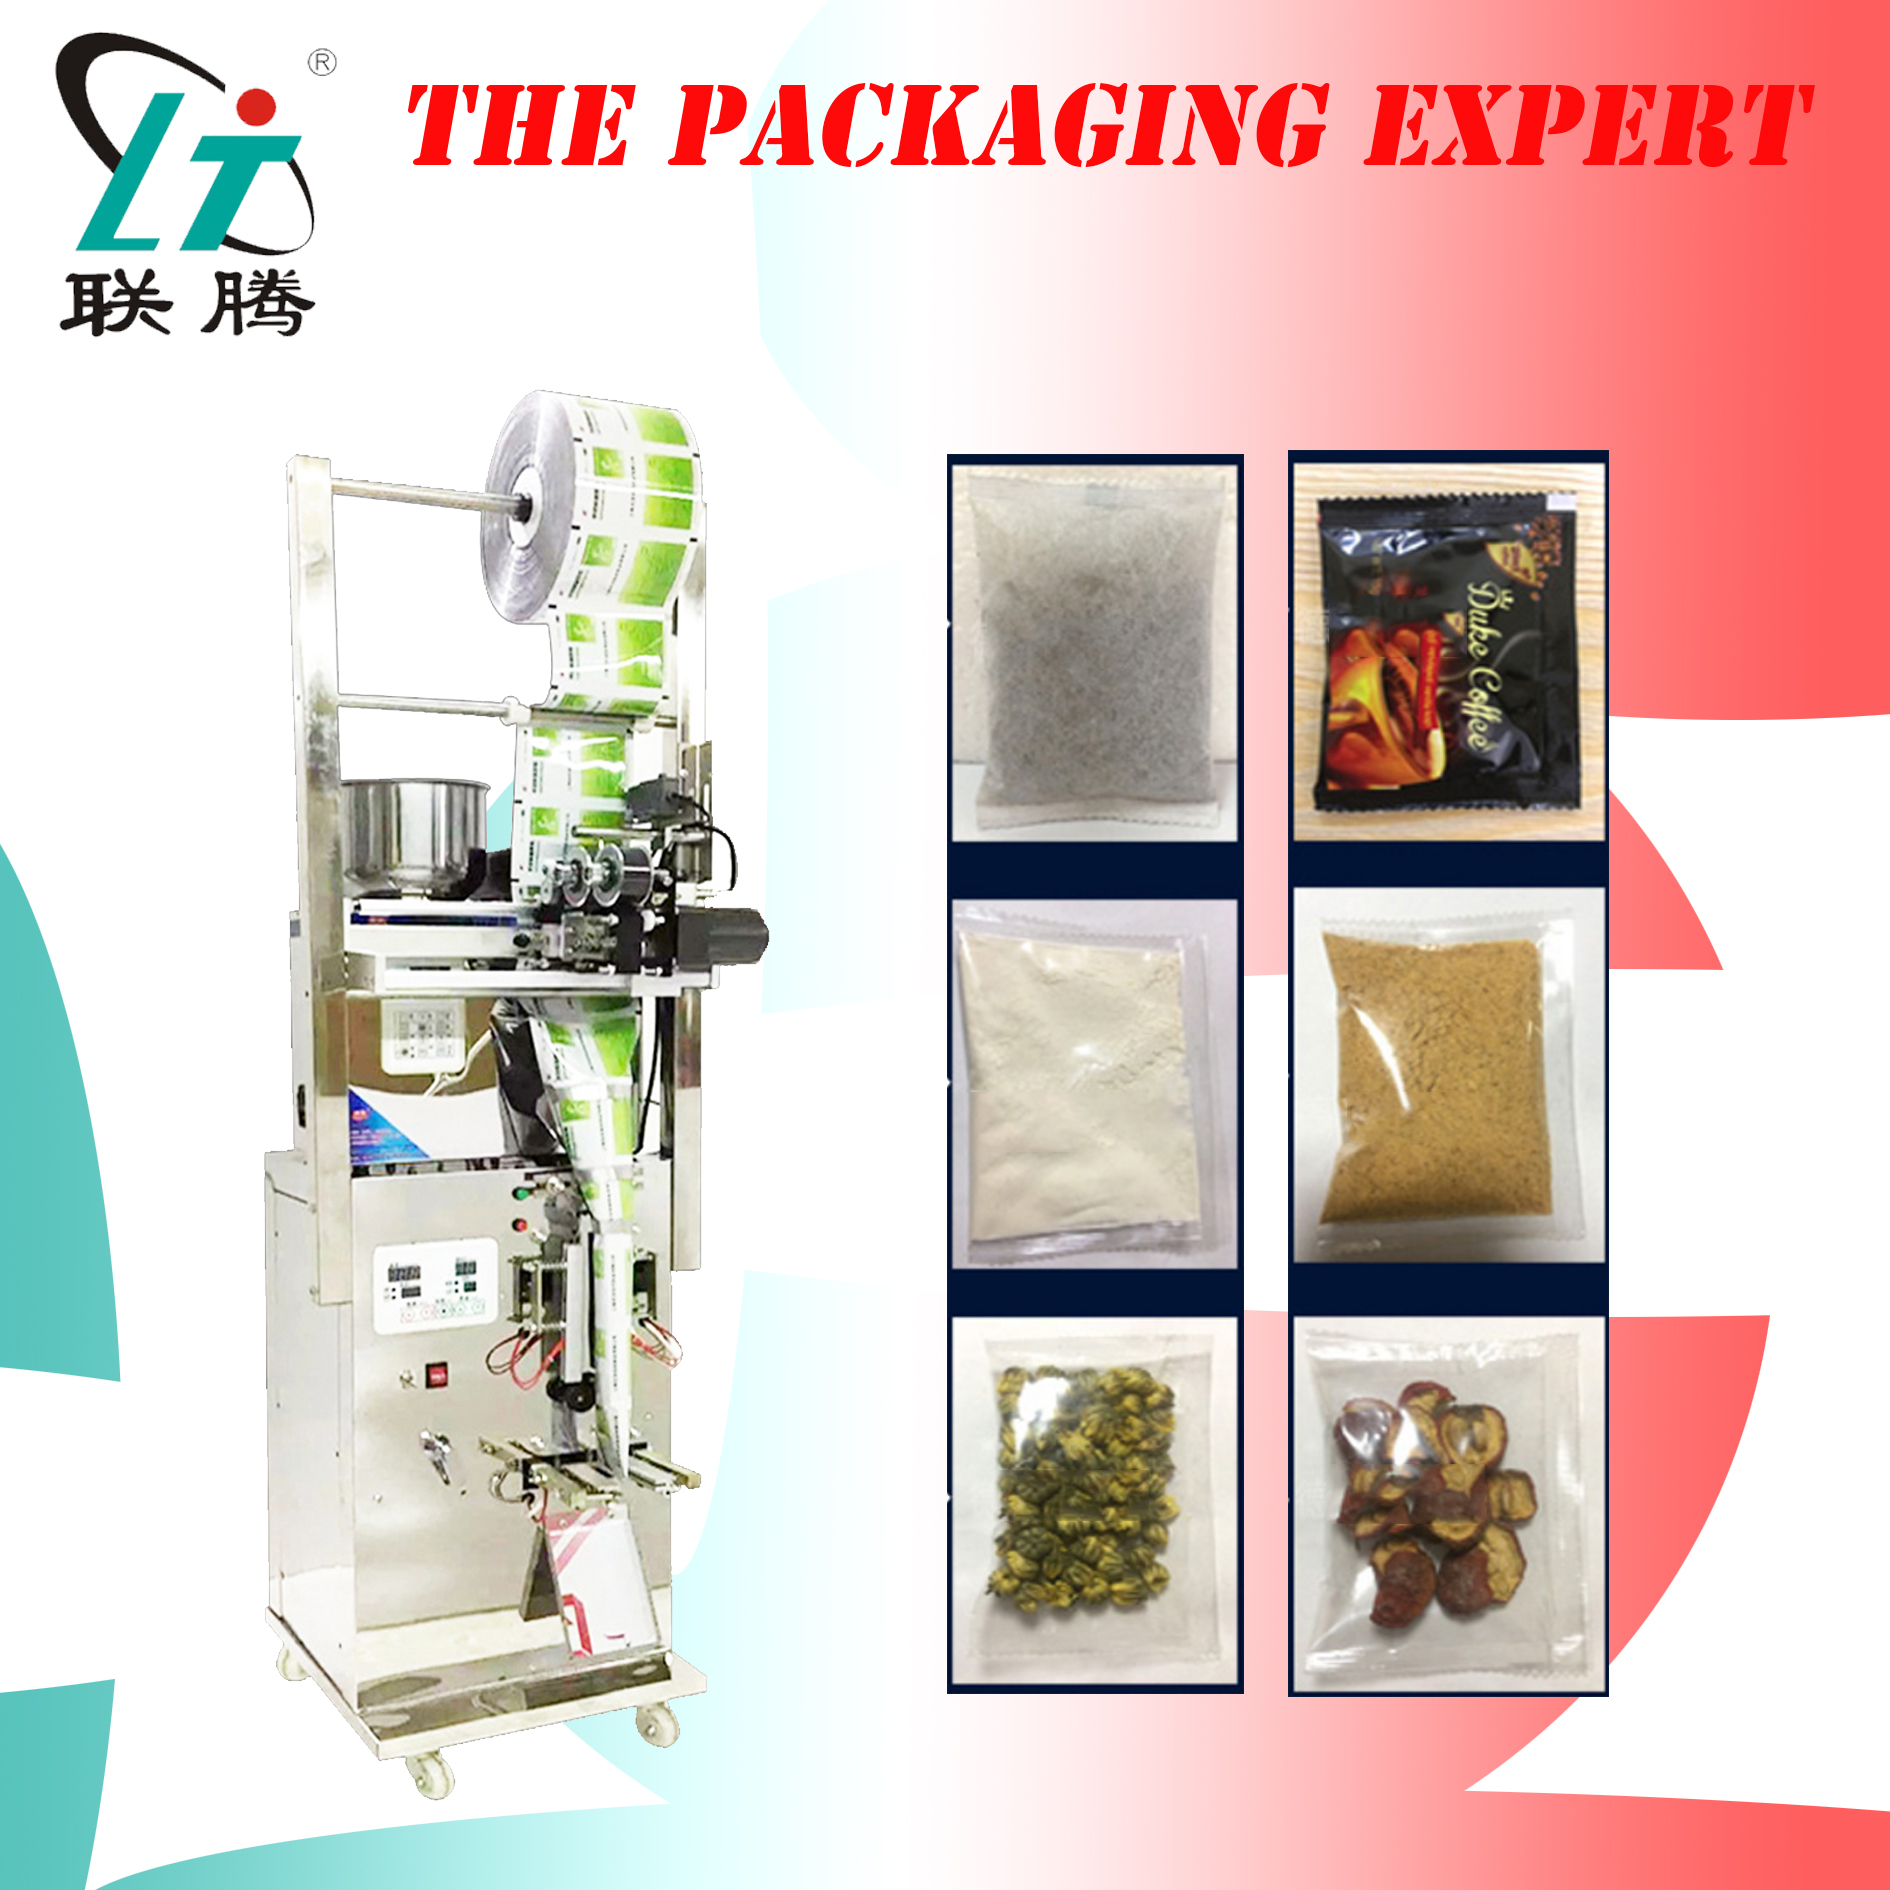 Automatic Packing Machine Weighing And Filling 3 Sides Sealing Machine For Snacks Tea Powder Medicine Herb Pet Food Seed Pouch